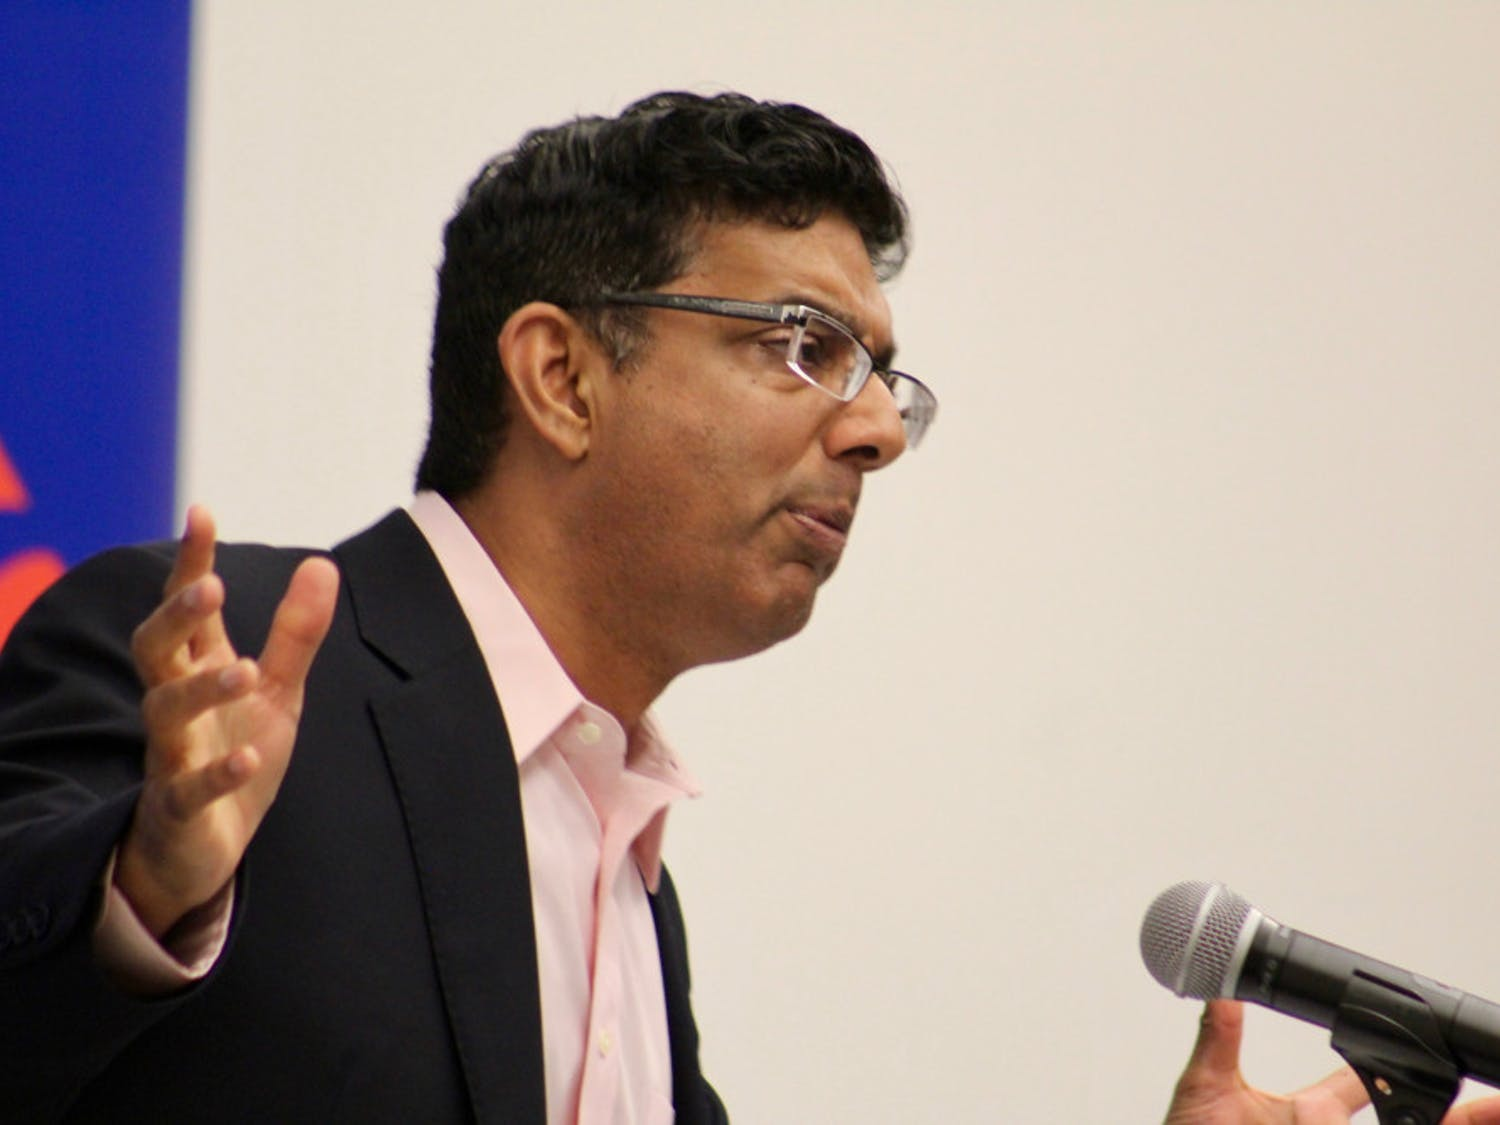 Dinesh D'Souza did not shy away from hard political topics and primarily talked about the differences between the Democratic and Republican Parties that have dominated American politics.